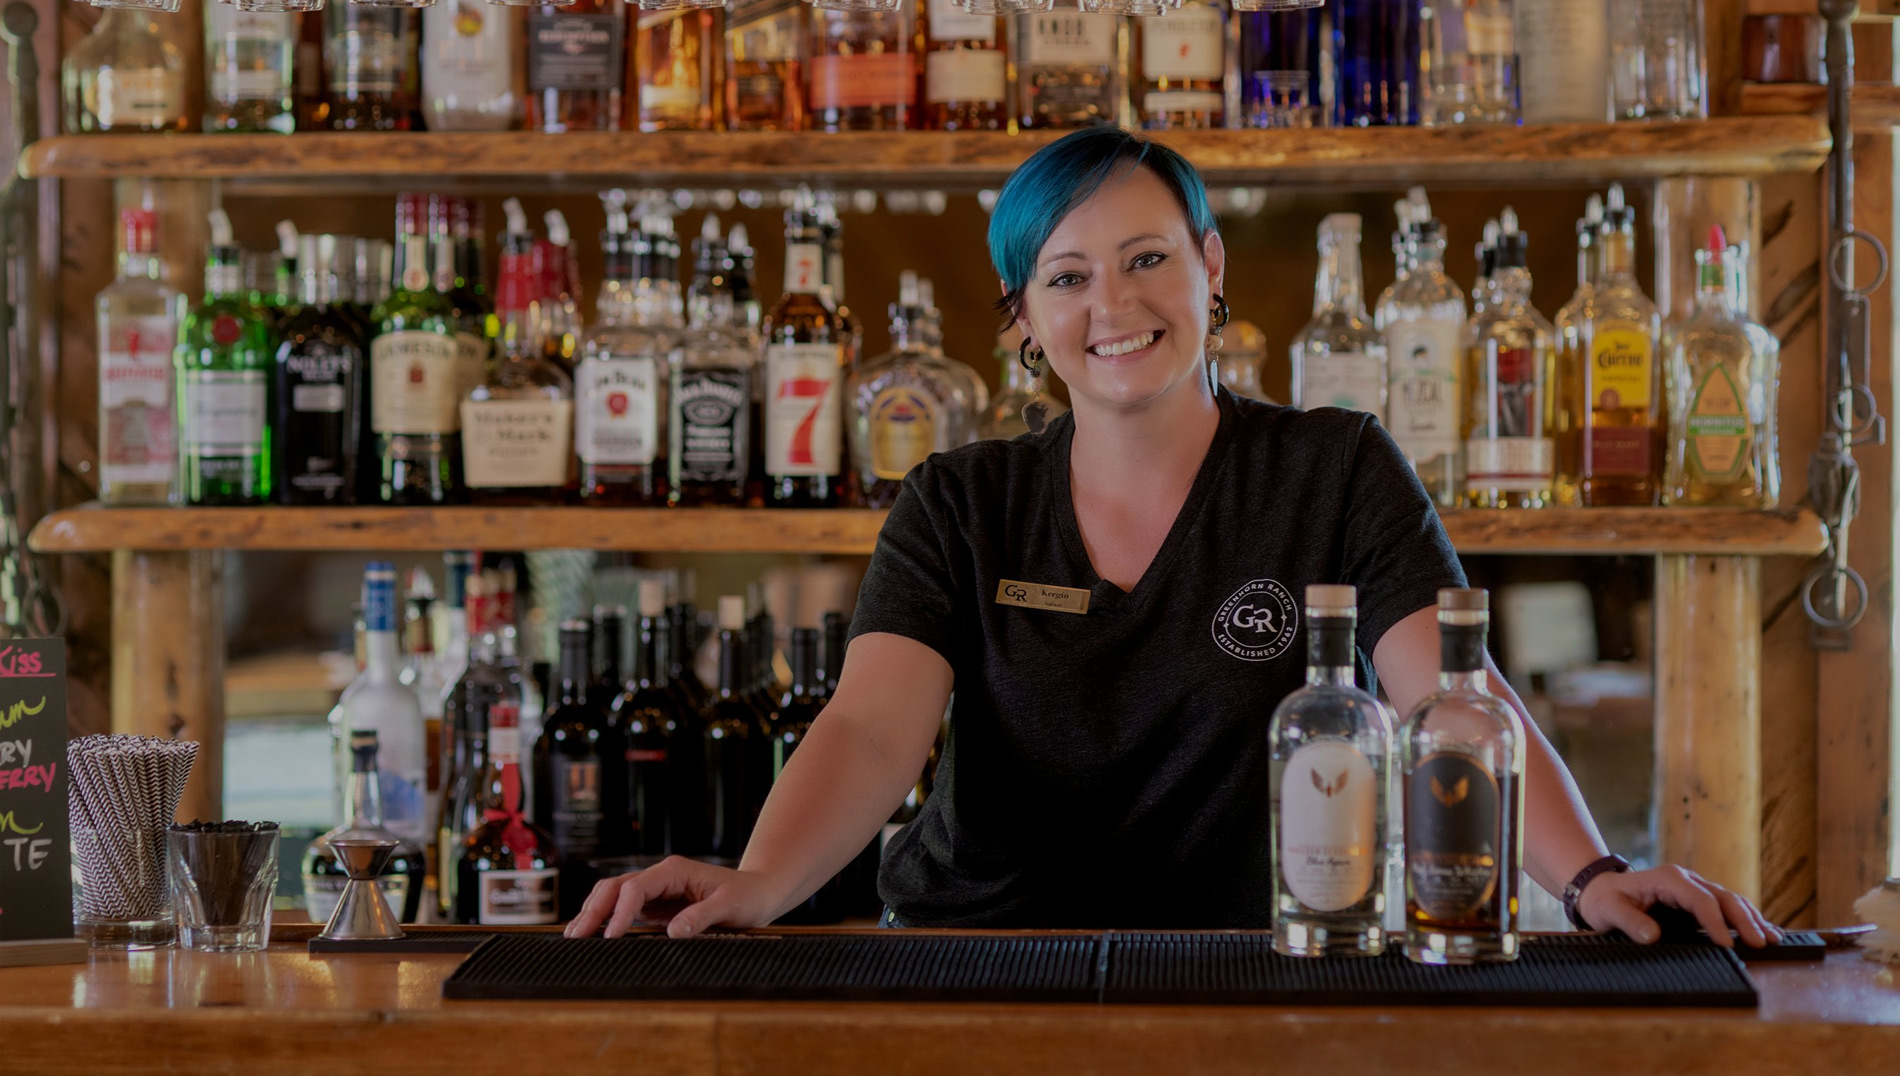 Our bartender ready to mix your favorite cocktail at Greenhorn Ranch